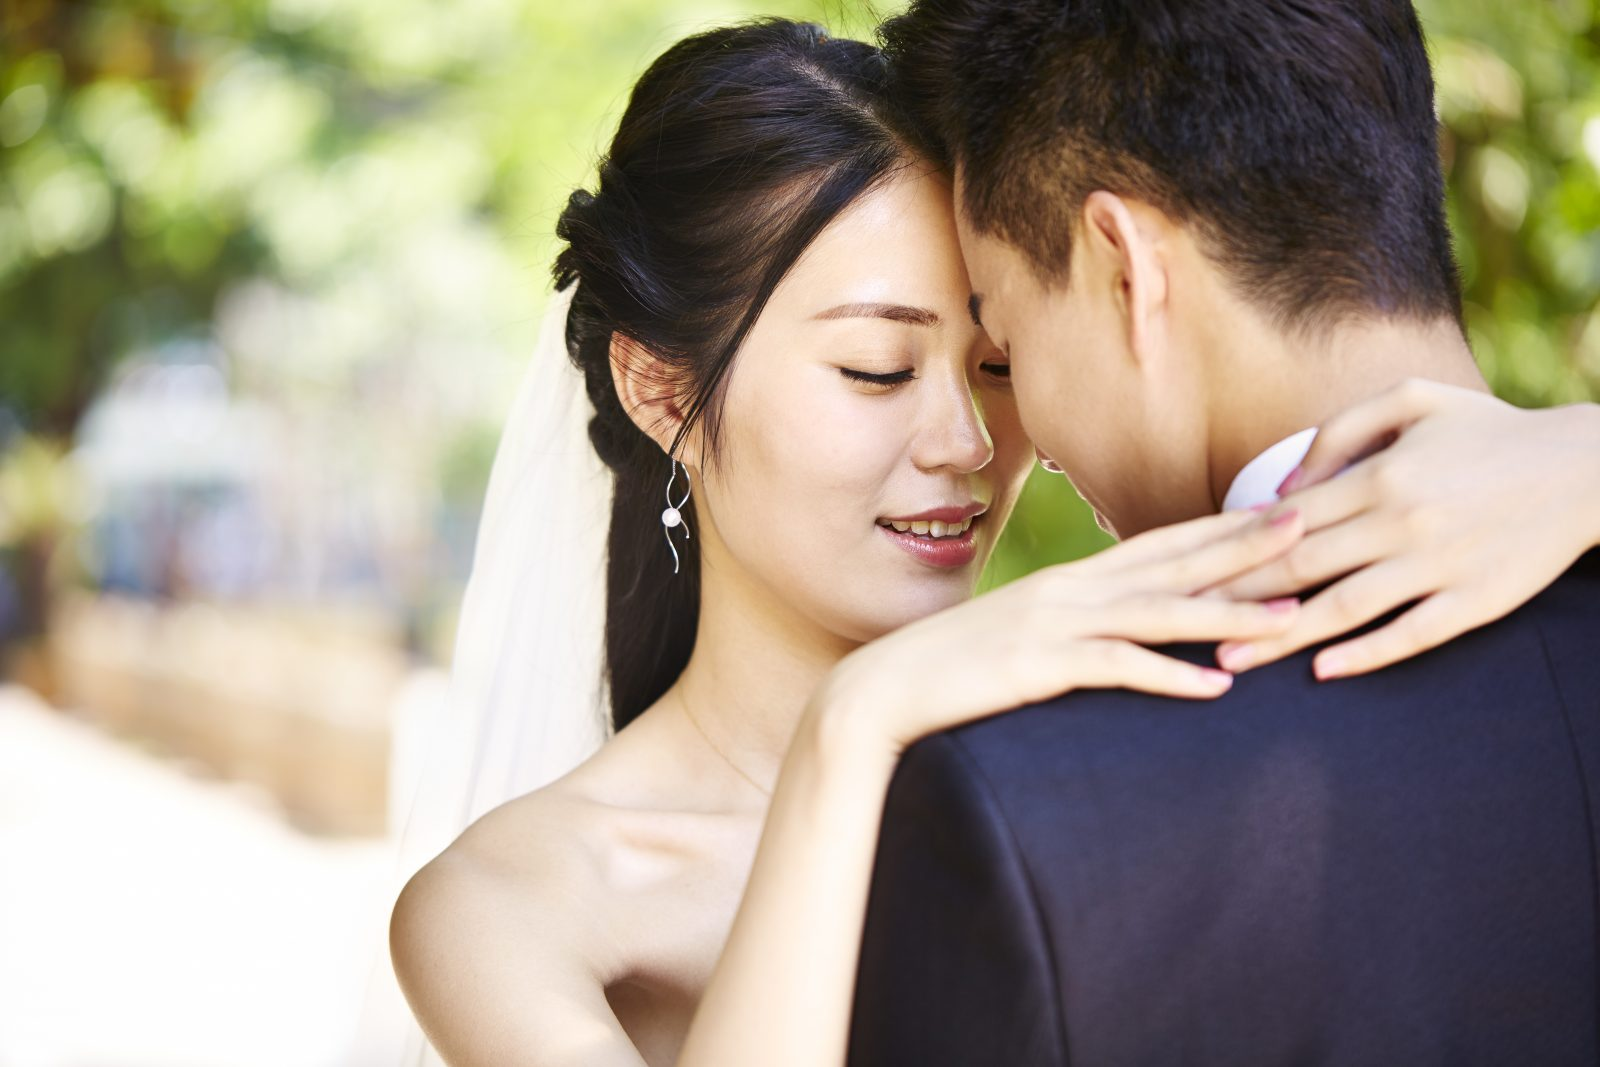 5 MOST IMPORTANT CHINESE WEDDING TRADITIONS YOU SHOULD KNOW ABOUT